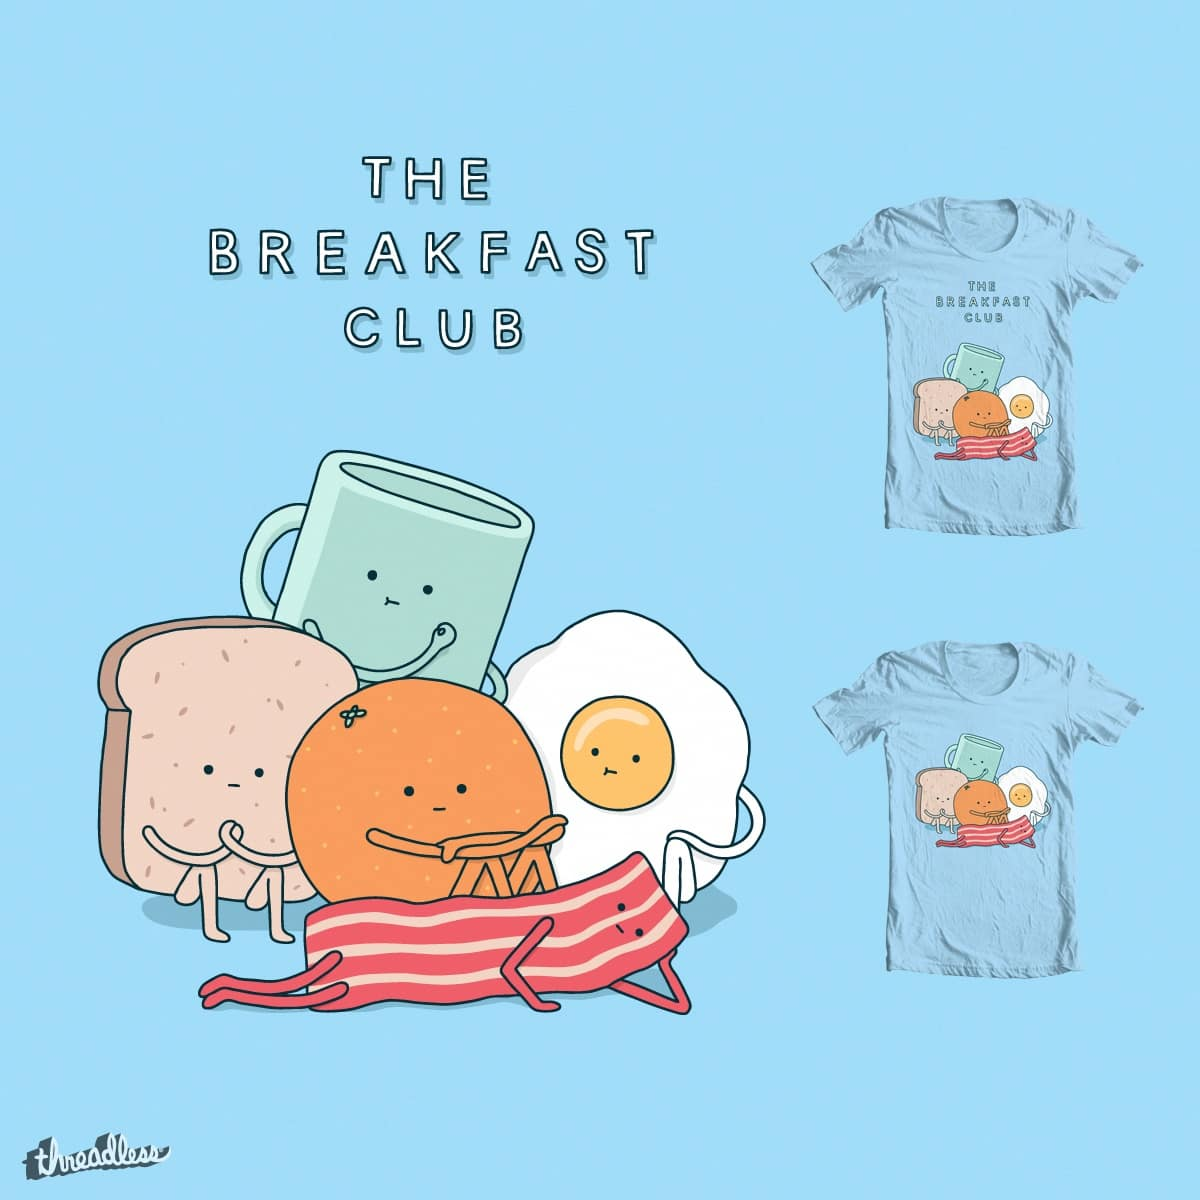 The Breakfast Club by Haasbroek on Threadless